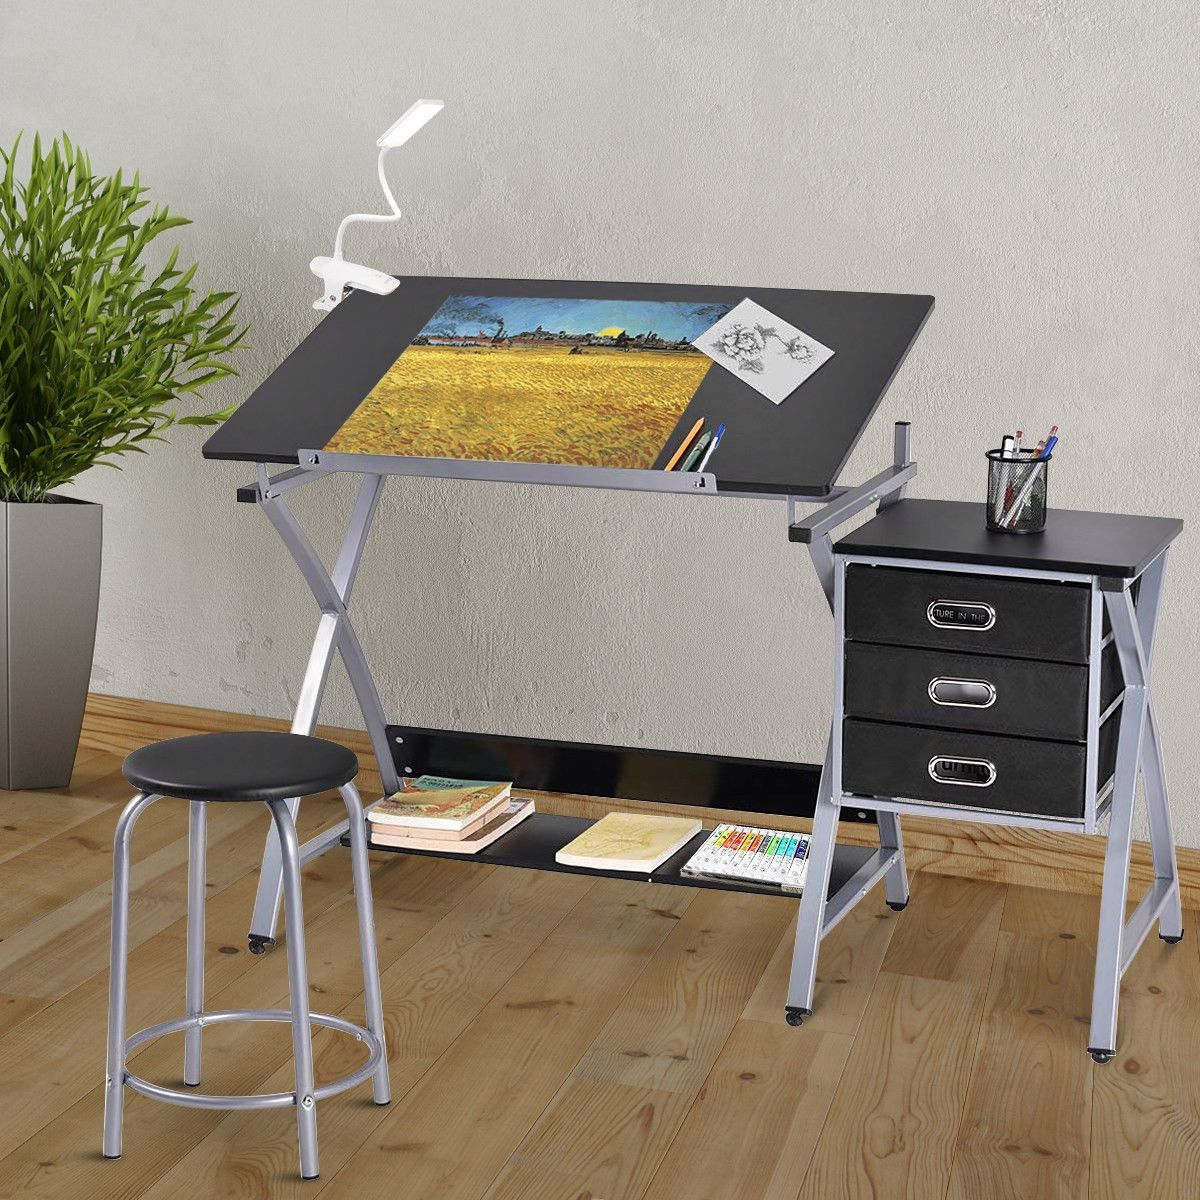 Adjustable Drafting Table Drawing Desk With Stools In 2020